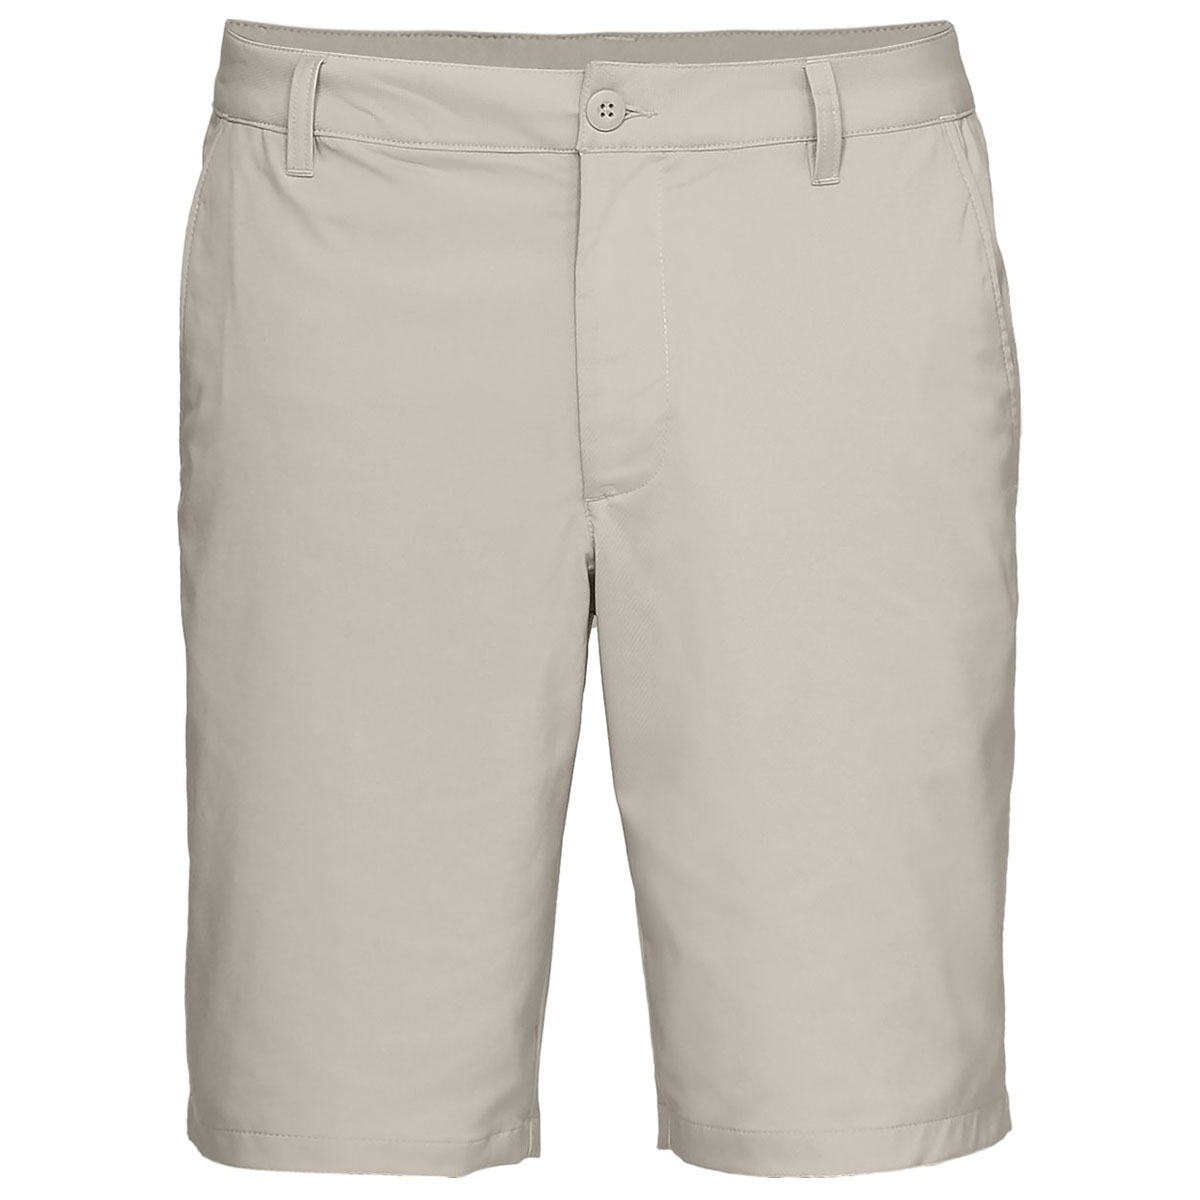 Under-Armour-Mens-EU-Tech-Stretch-Soft-Fitted-Golf-Shorts thumbnail 8